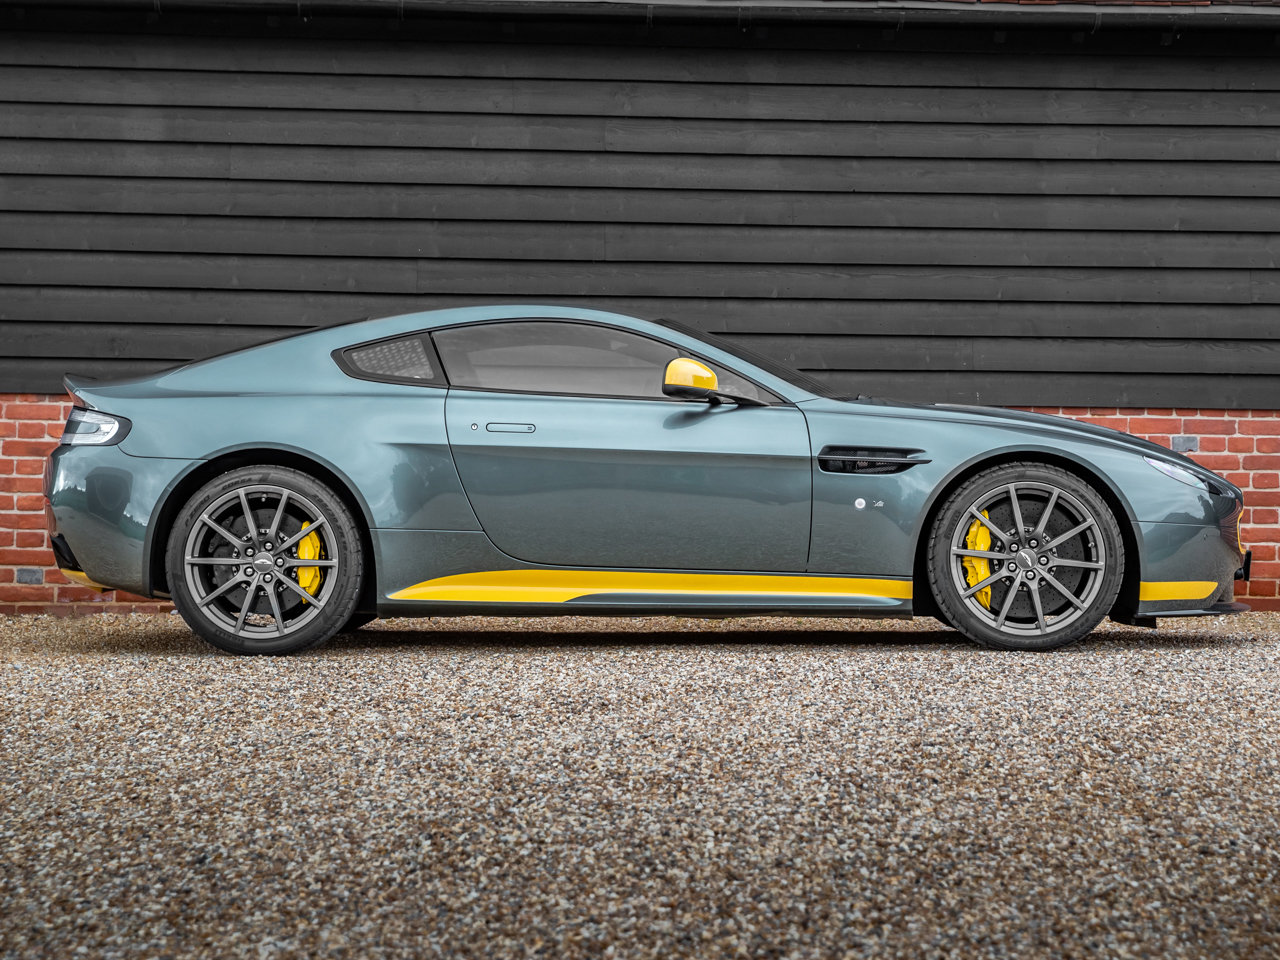 2017 Aston Martin V12 Vantage S Manual Coupe For Sale (picture 2 of 6)